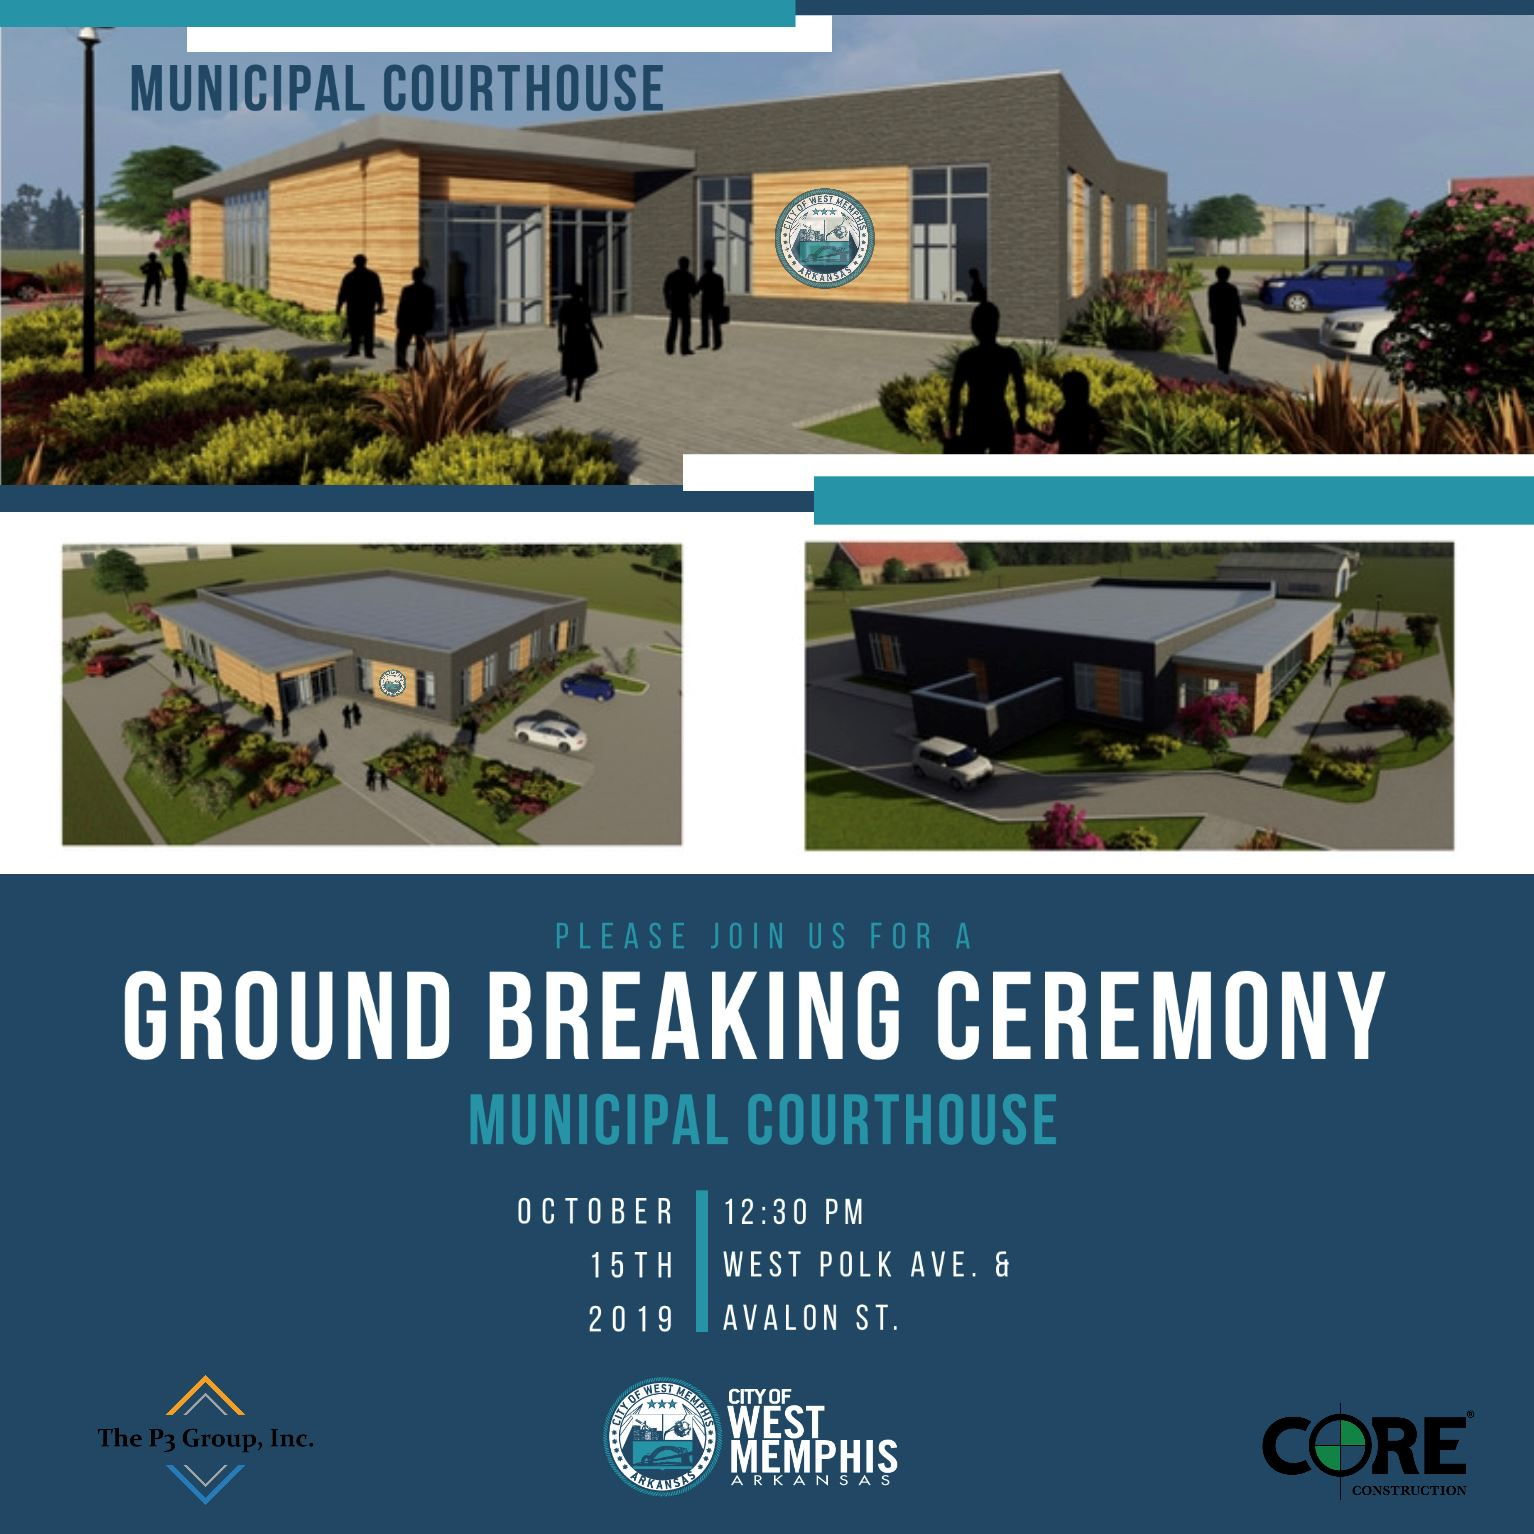 west memphis municipal courthouse ground breaking ceremony invitation